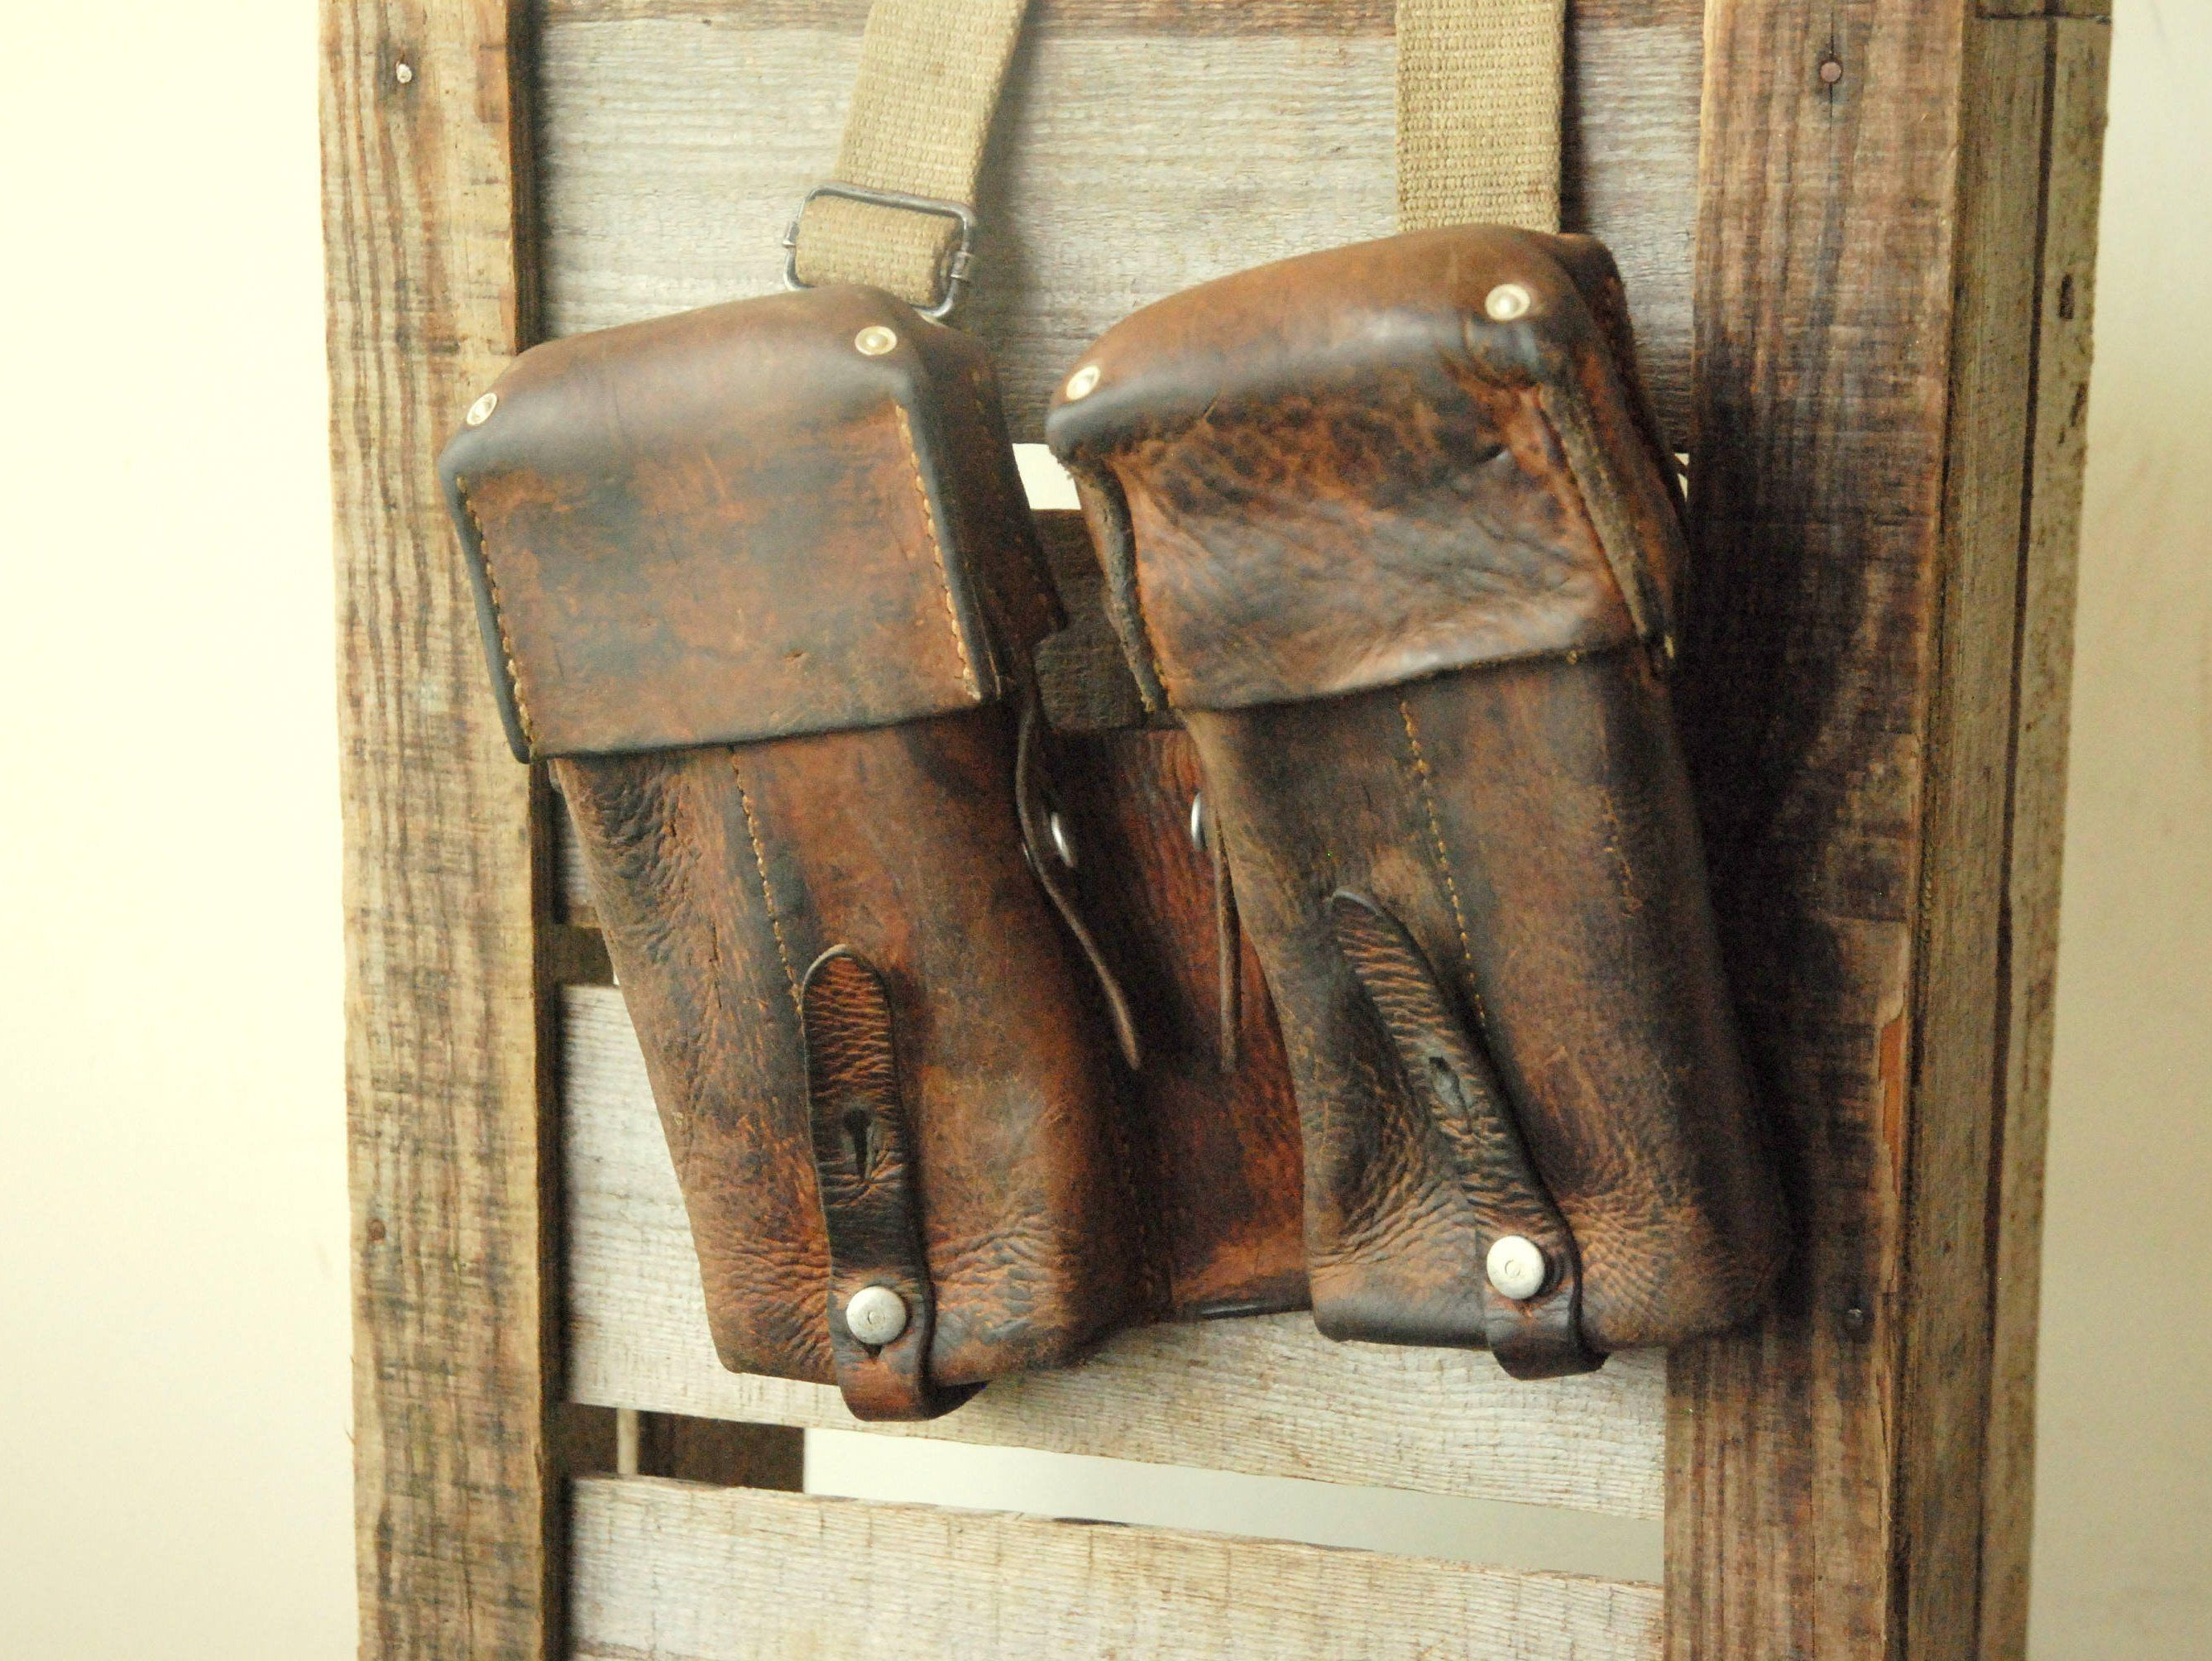 Ammunition Case of the Swiss Military larp steampunk Made of Sturdy Leather Vintage Swiss Army Ammo Bag